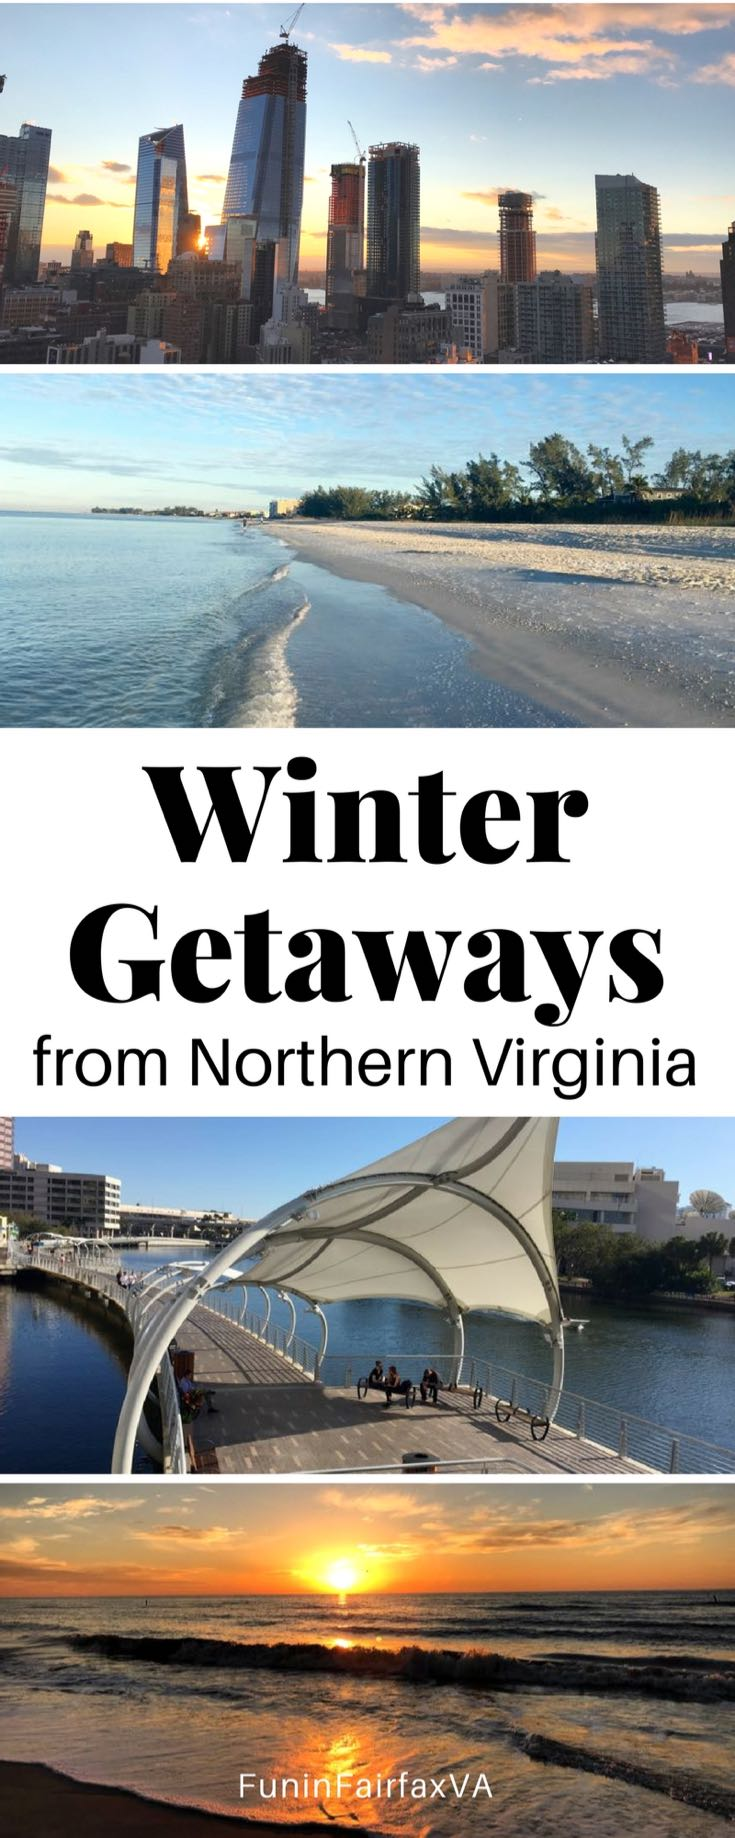 USA Travel. Winter Getaways from Northern Virginia and Washington DC by plane, train, and automobile.